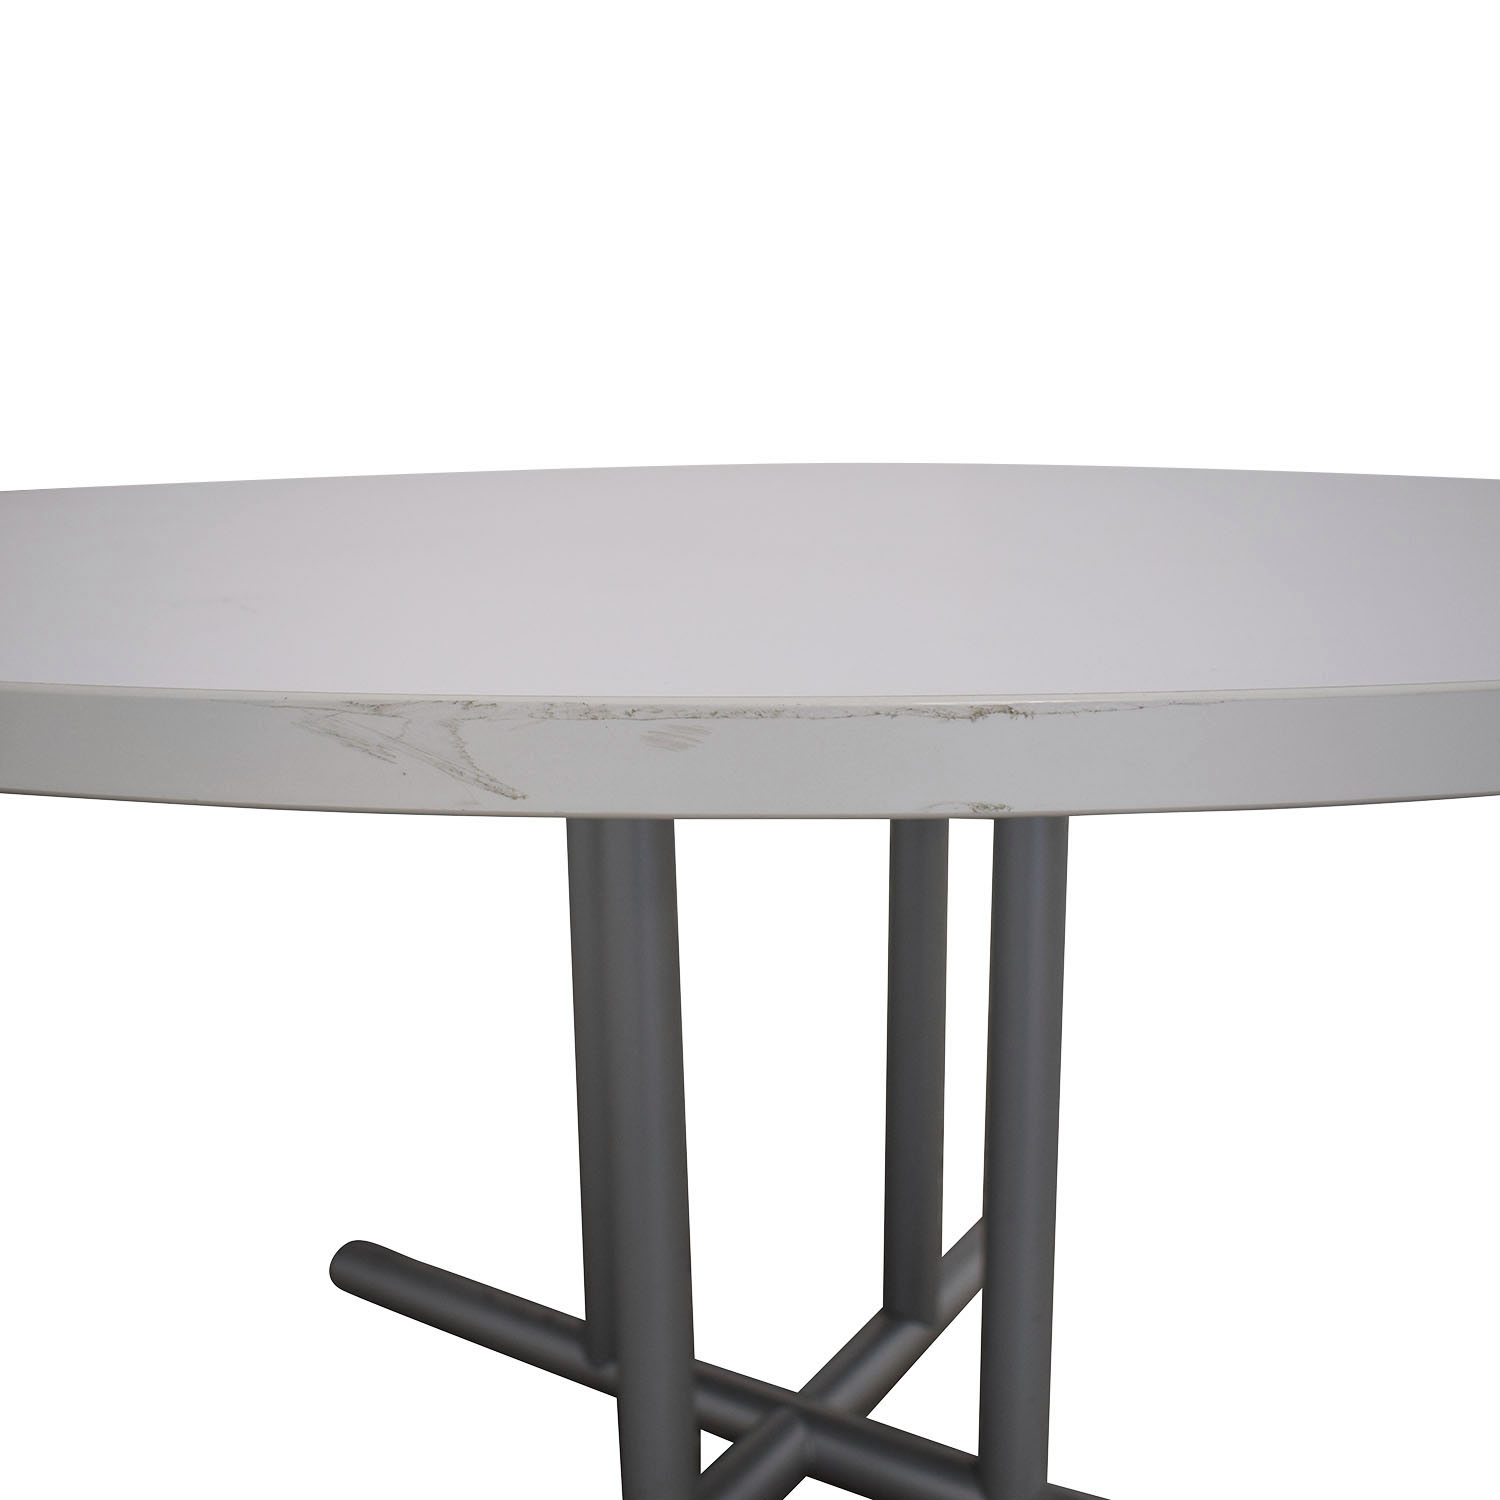 Versteel Versteel Performance X4 60 Round Table price